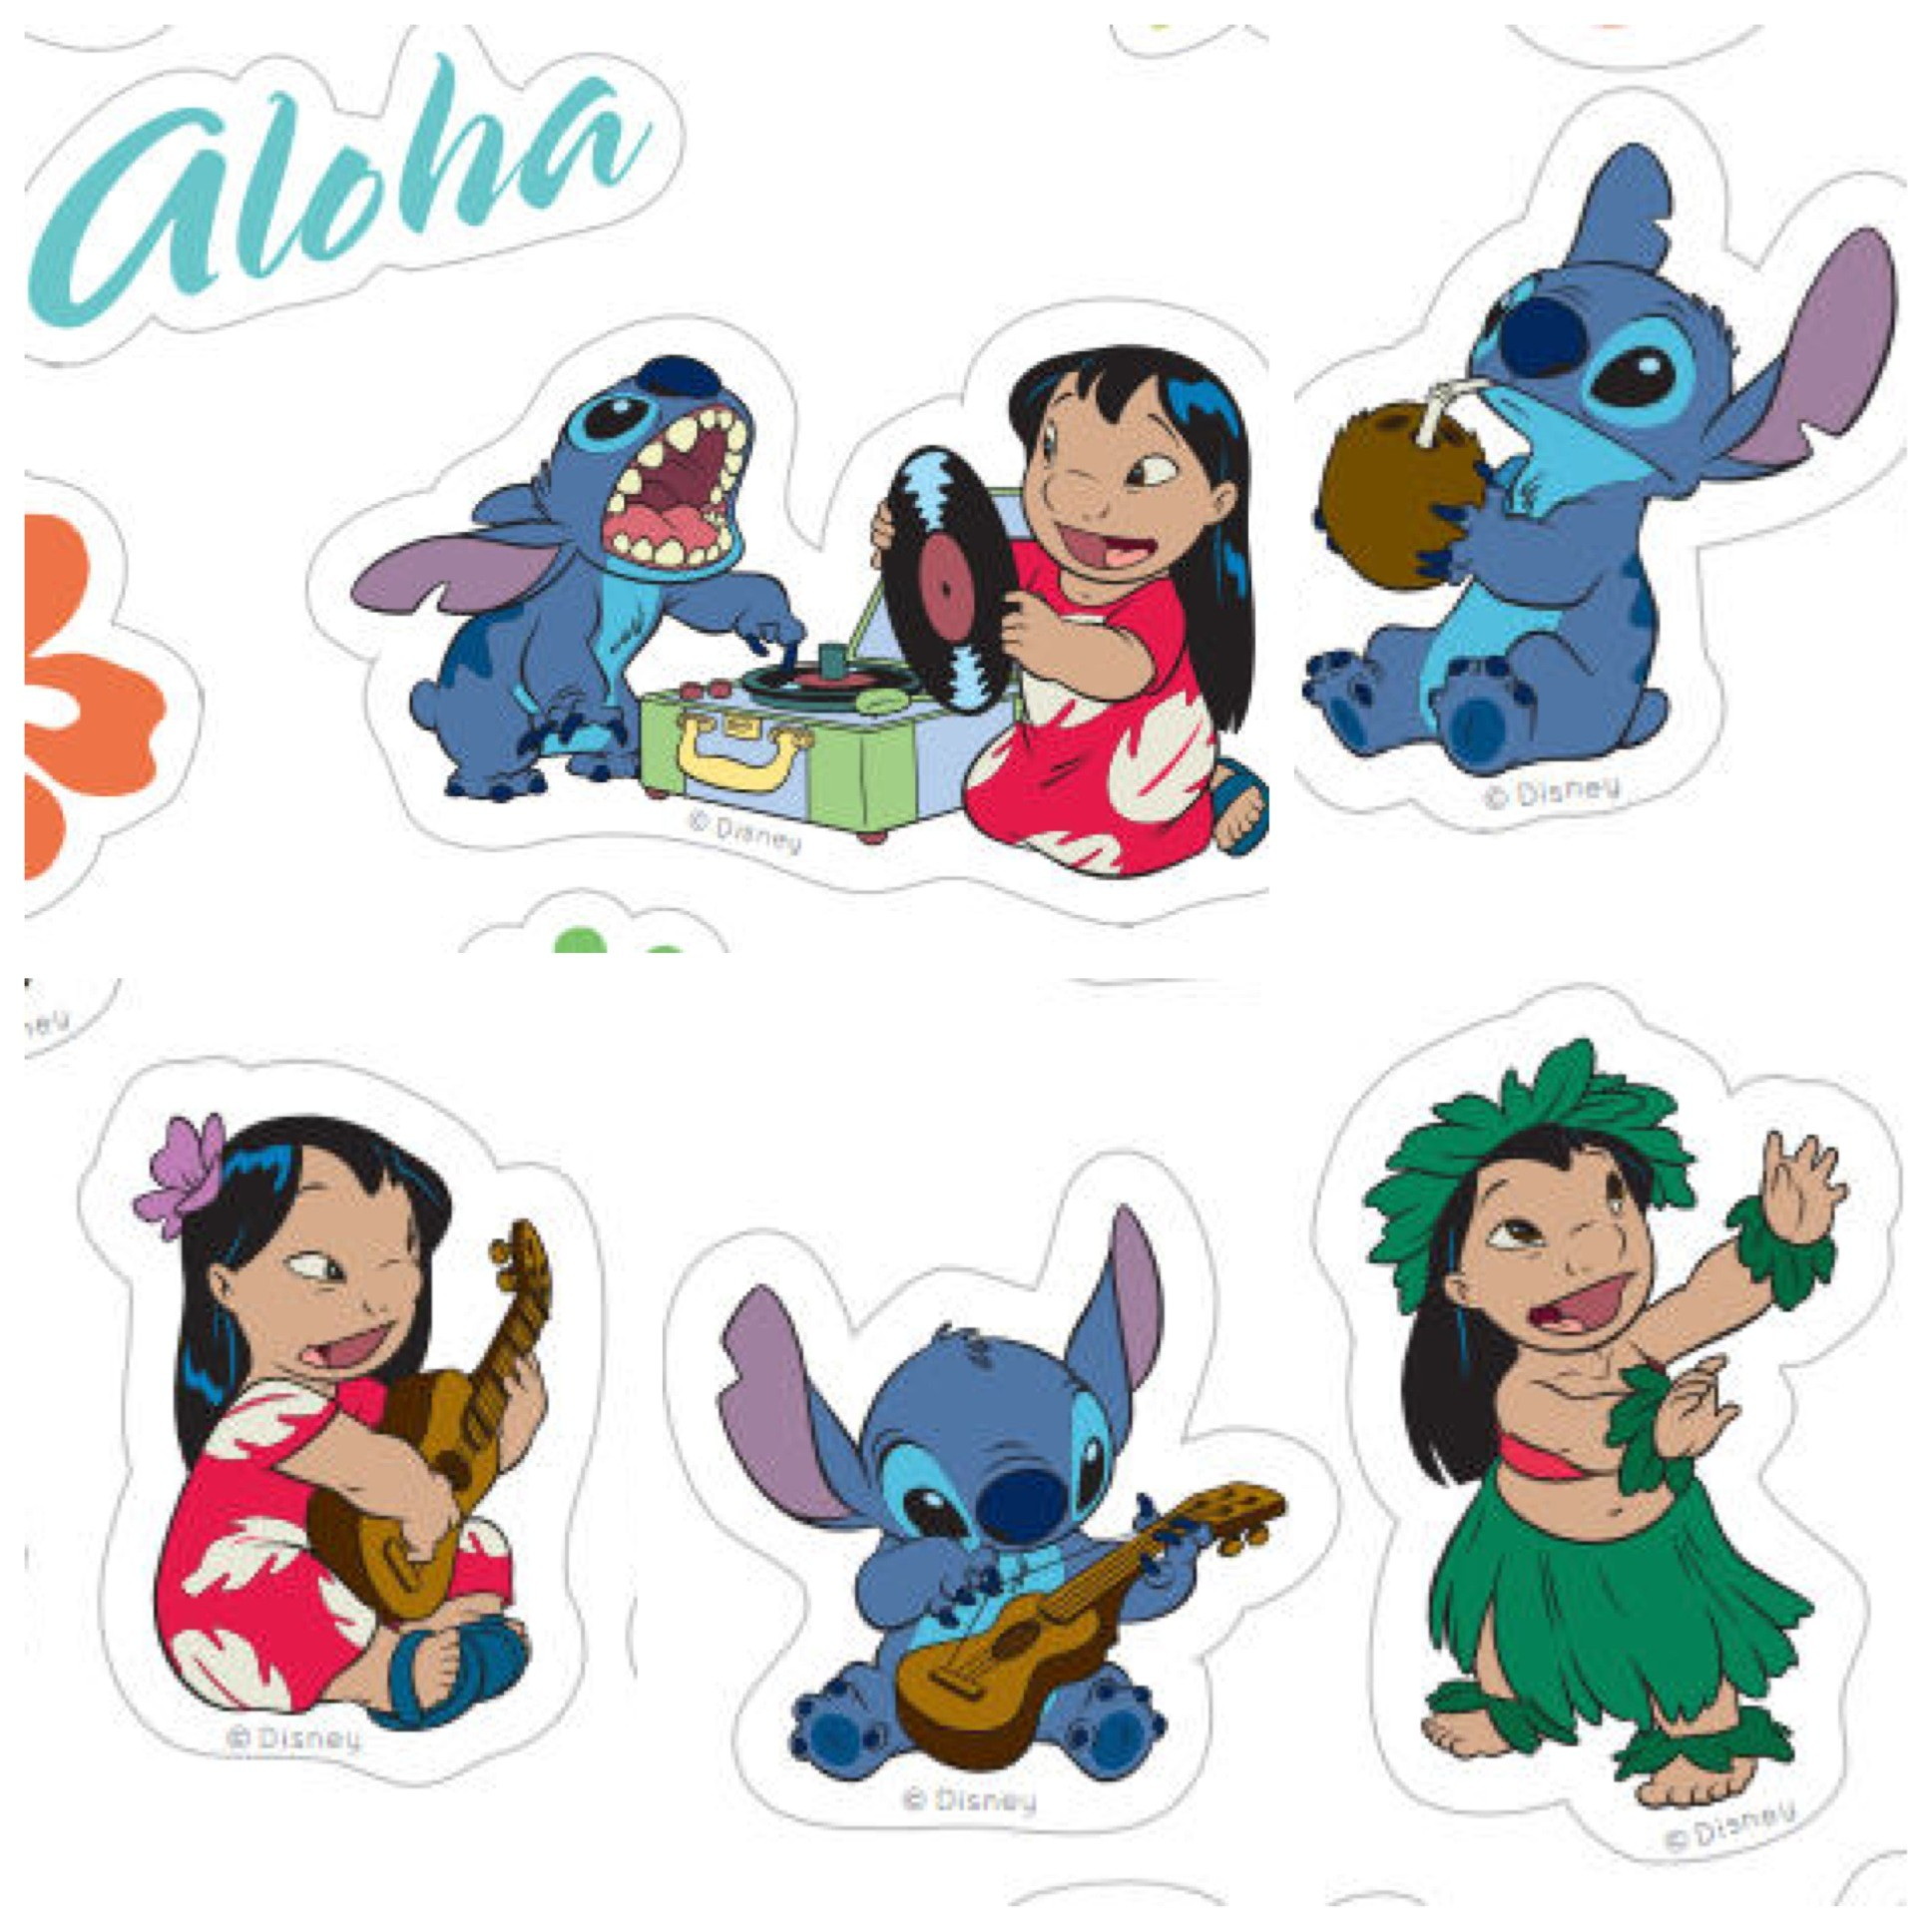 1936x1936 Print and share these adorable Lilo & Stitch stickers from home.